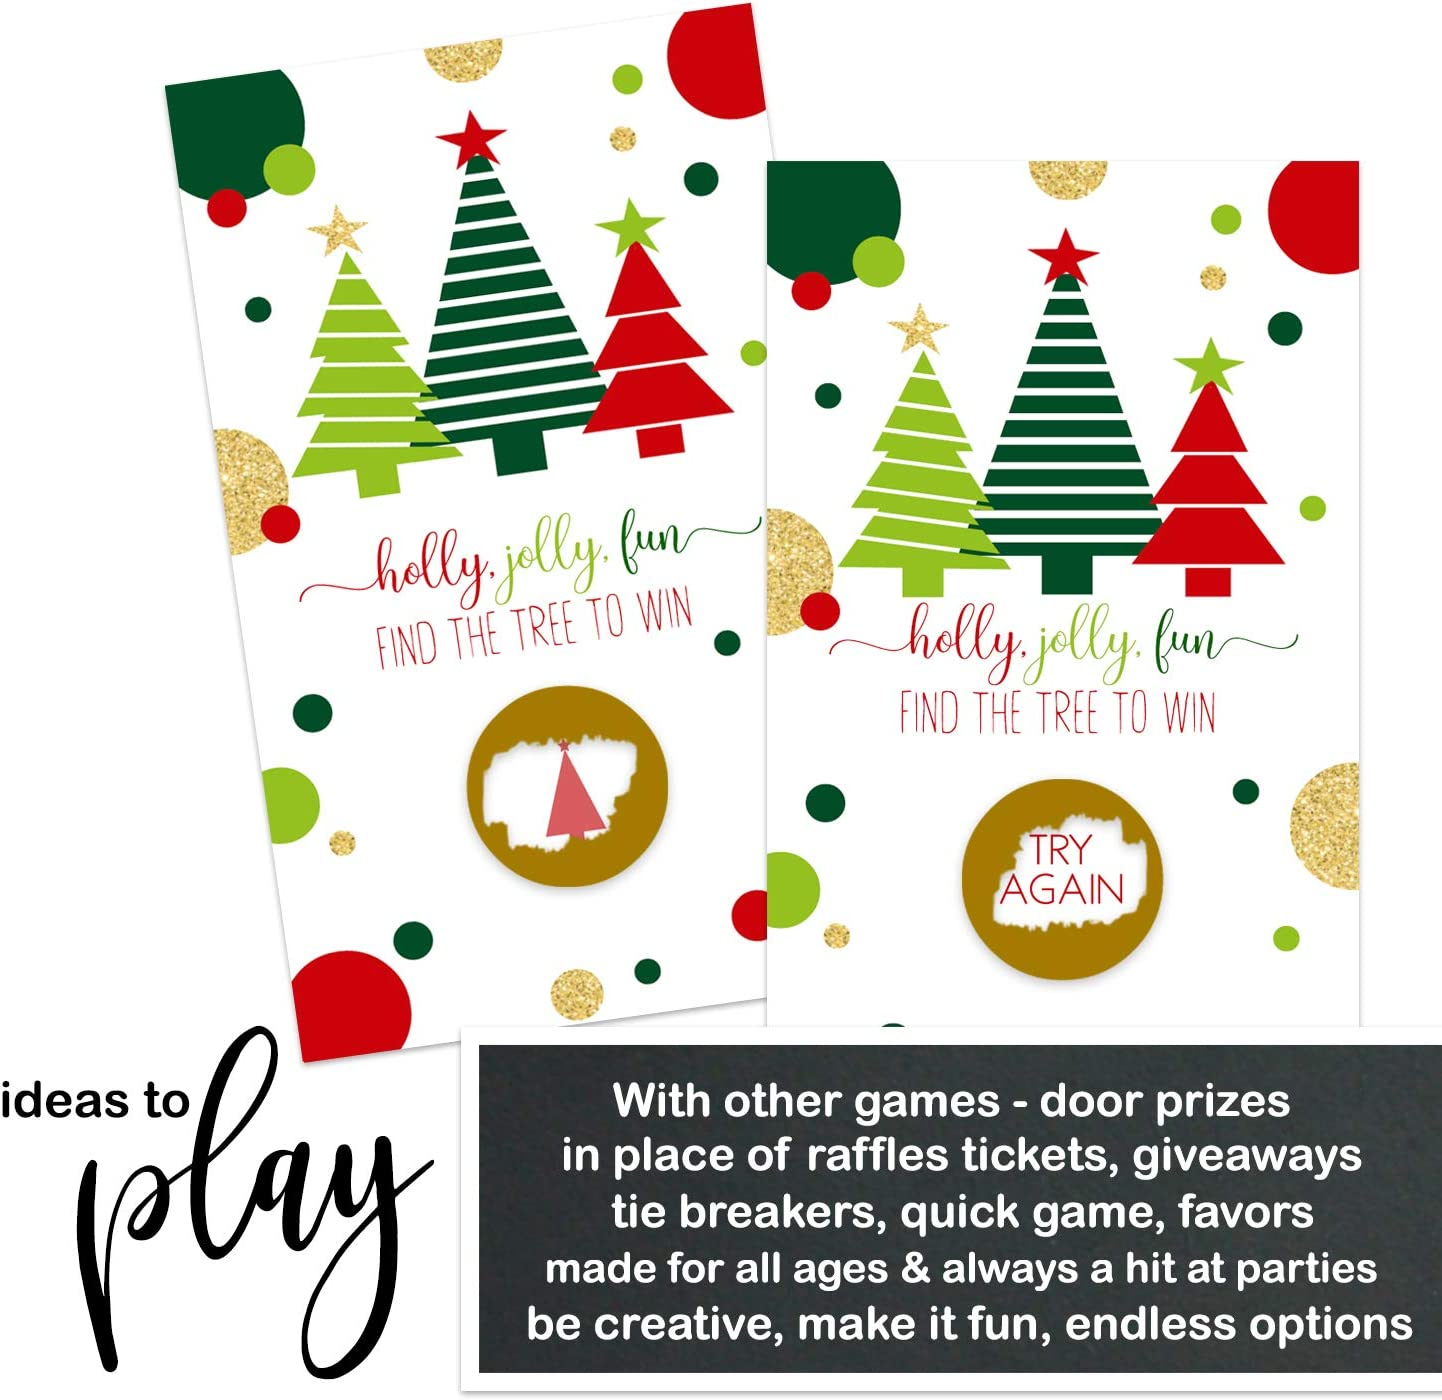 Amazon Com Jolly Trees Scratch Off Game Cards 30 Pack Christmas Party Supplies Holiday Event Activity Groups Kids Adult Festive Raffle Tickets Business Prize Drawings Red Green Gold Toys Games